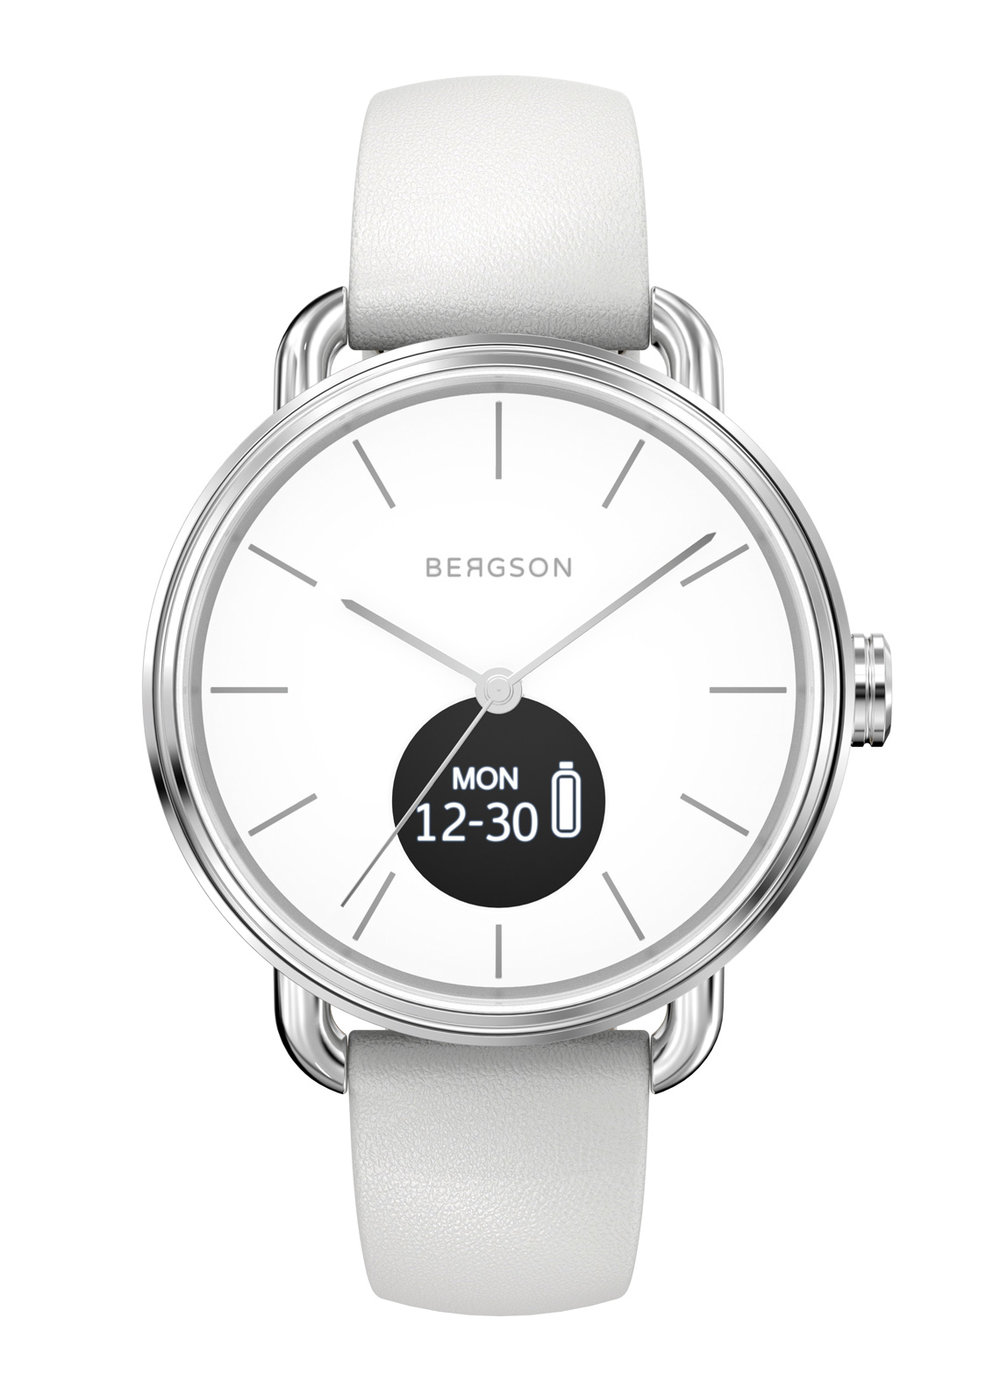 bergson_watches_BGW78493L6.jpg